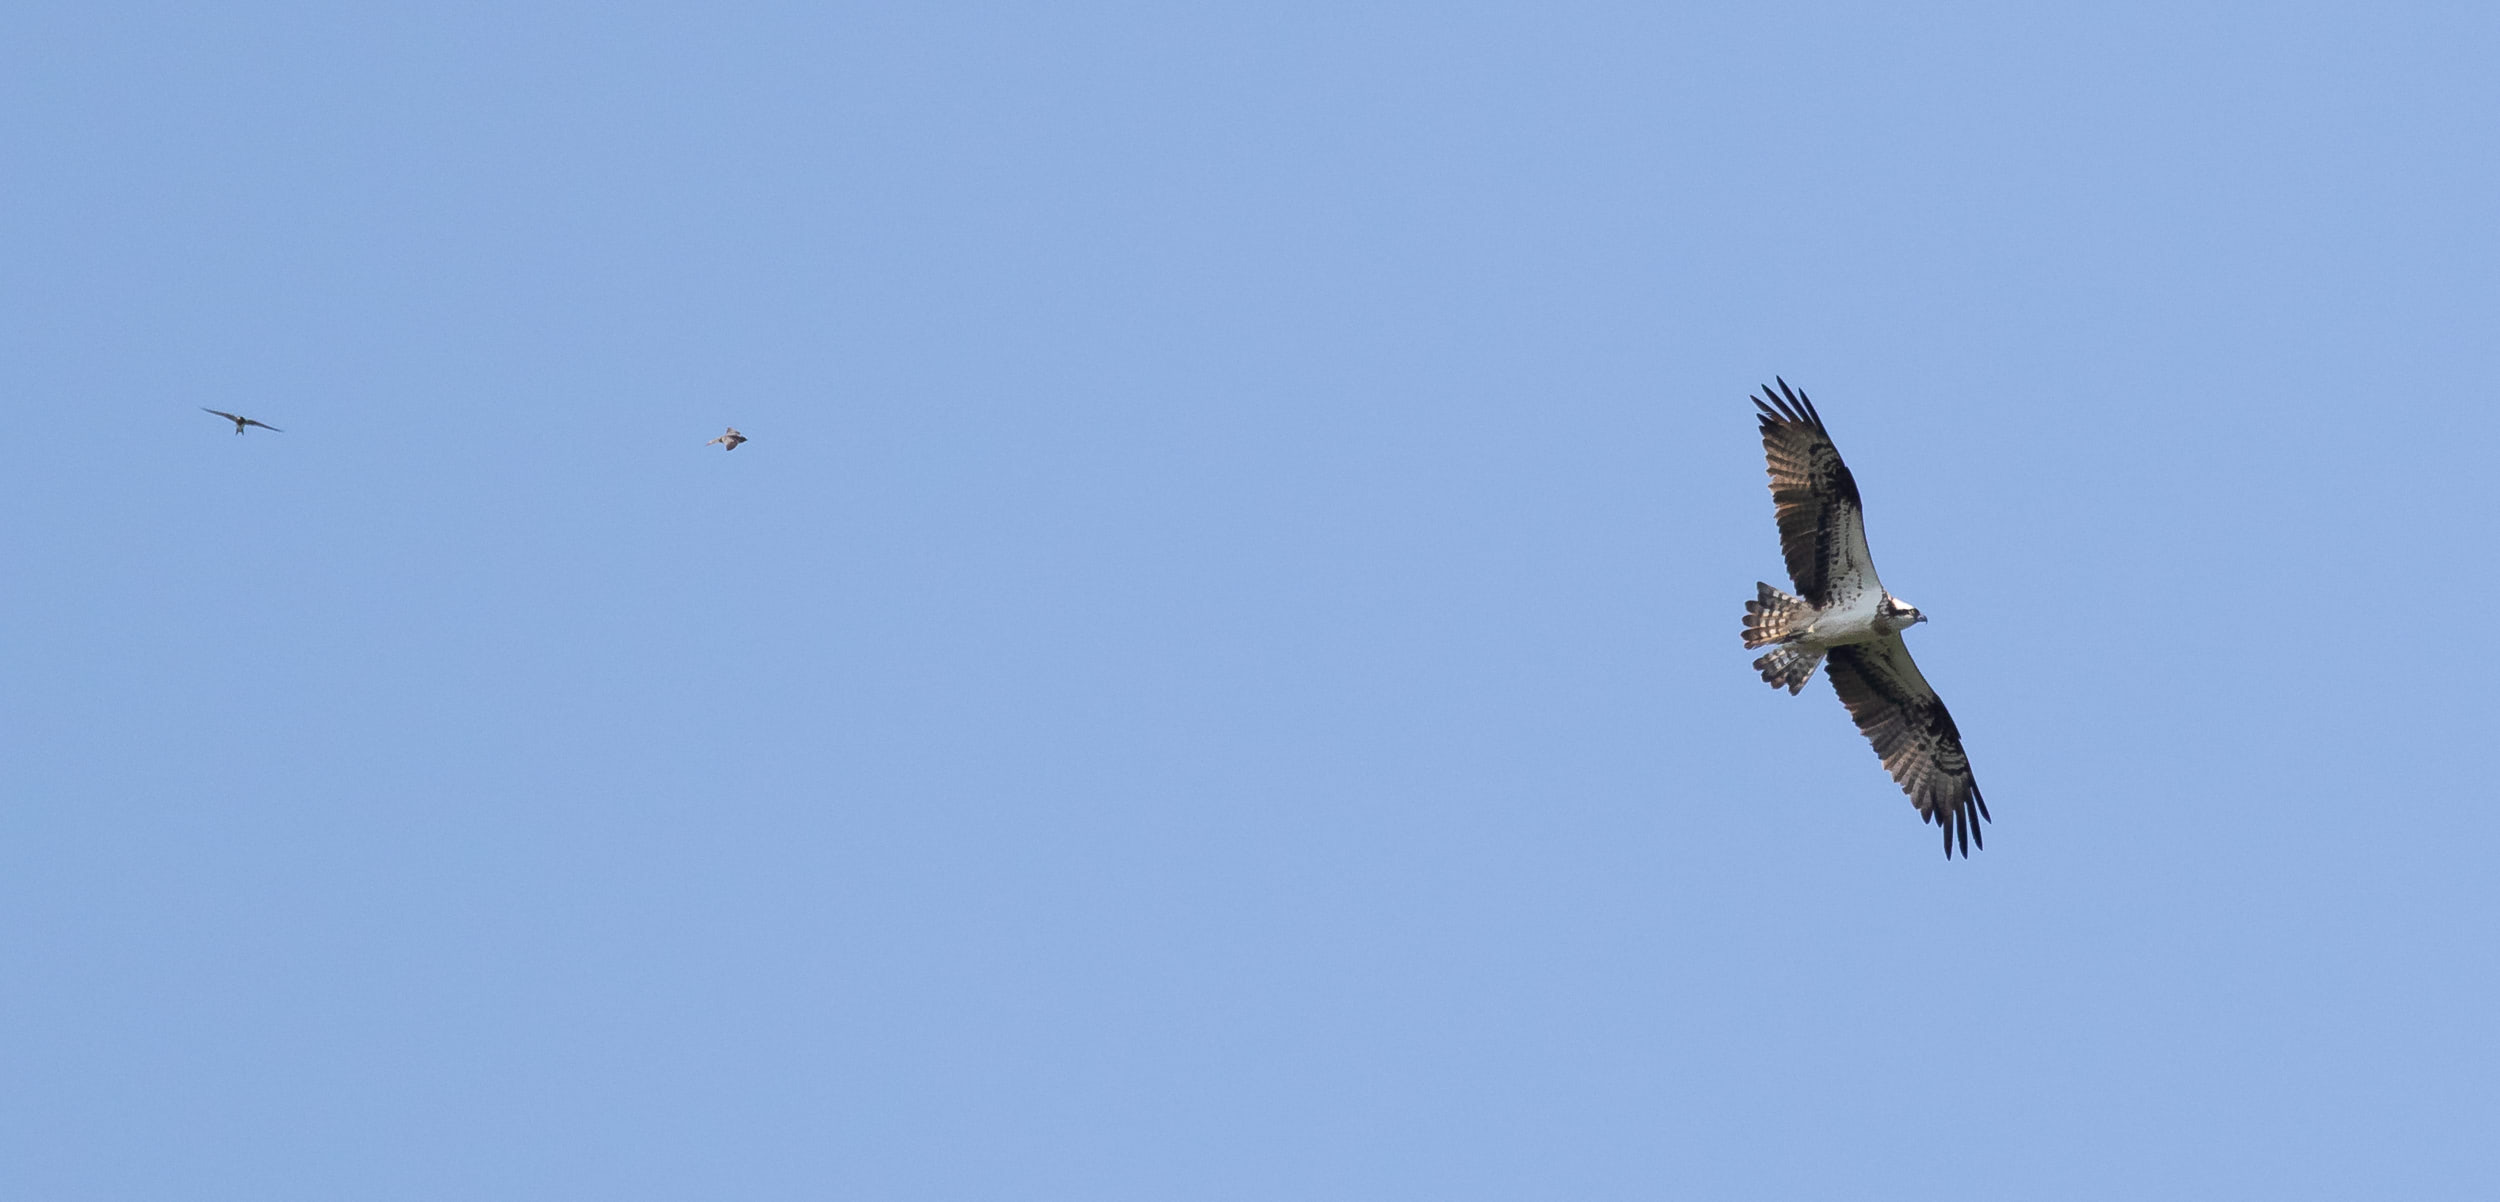 August 27th.  Adult female Osprey with 2 nice Alpine Swifts circling around it.